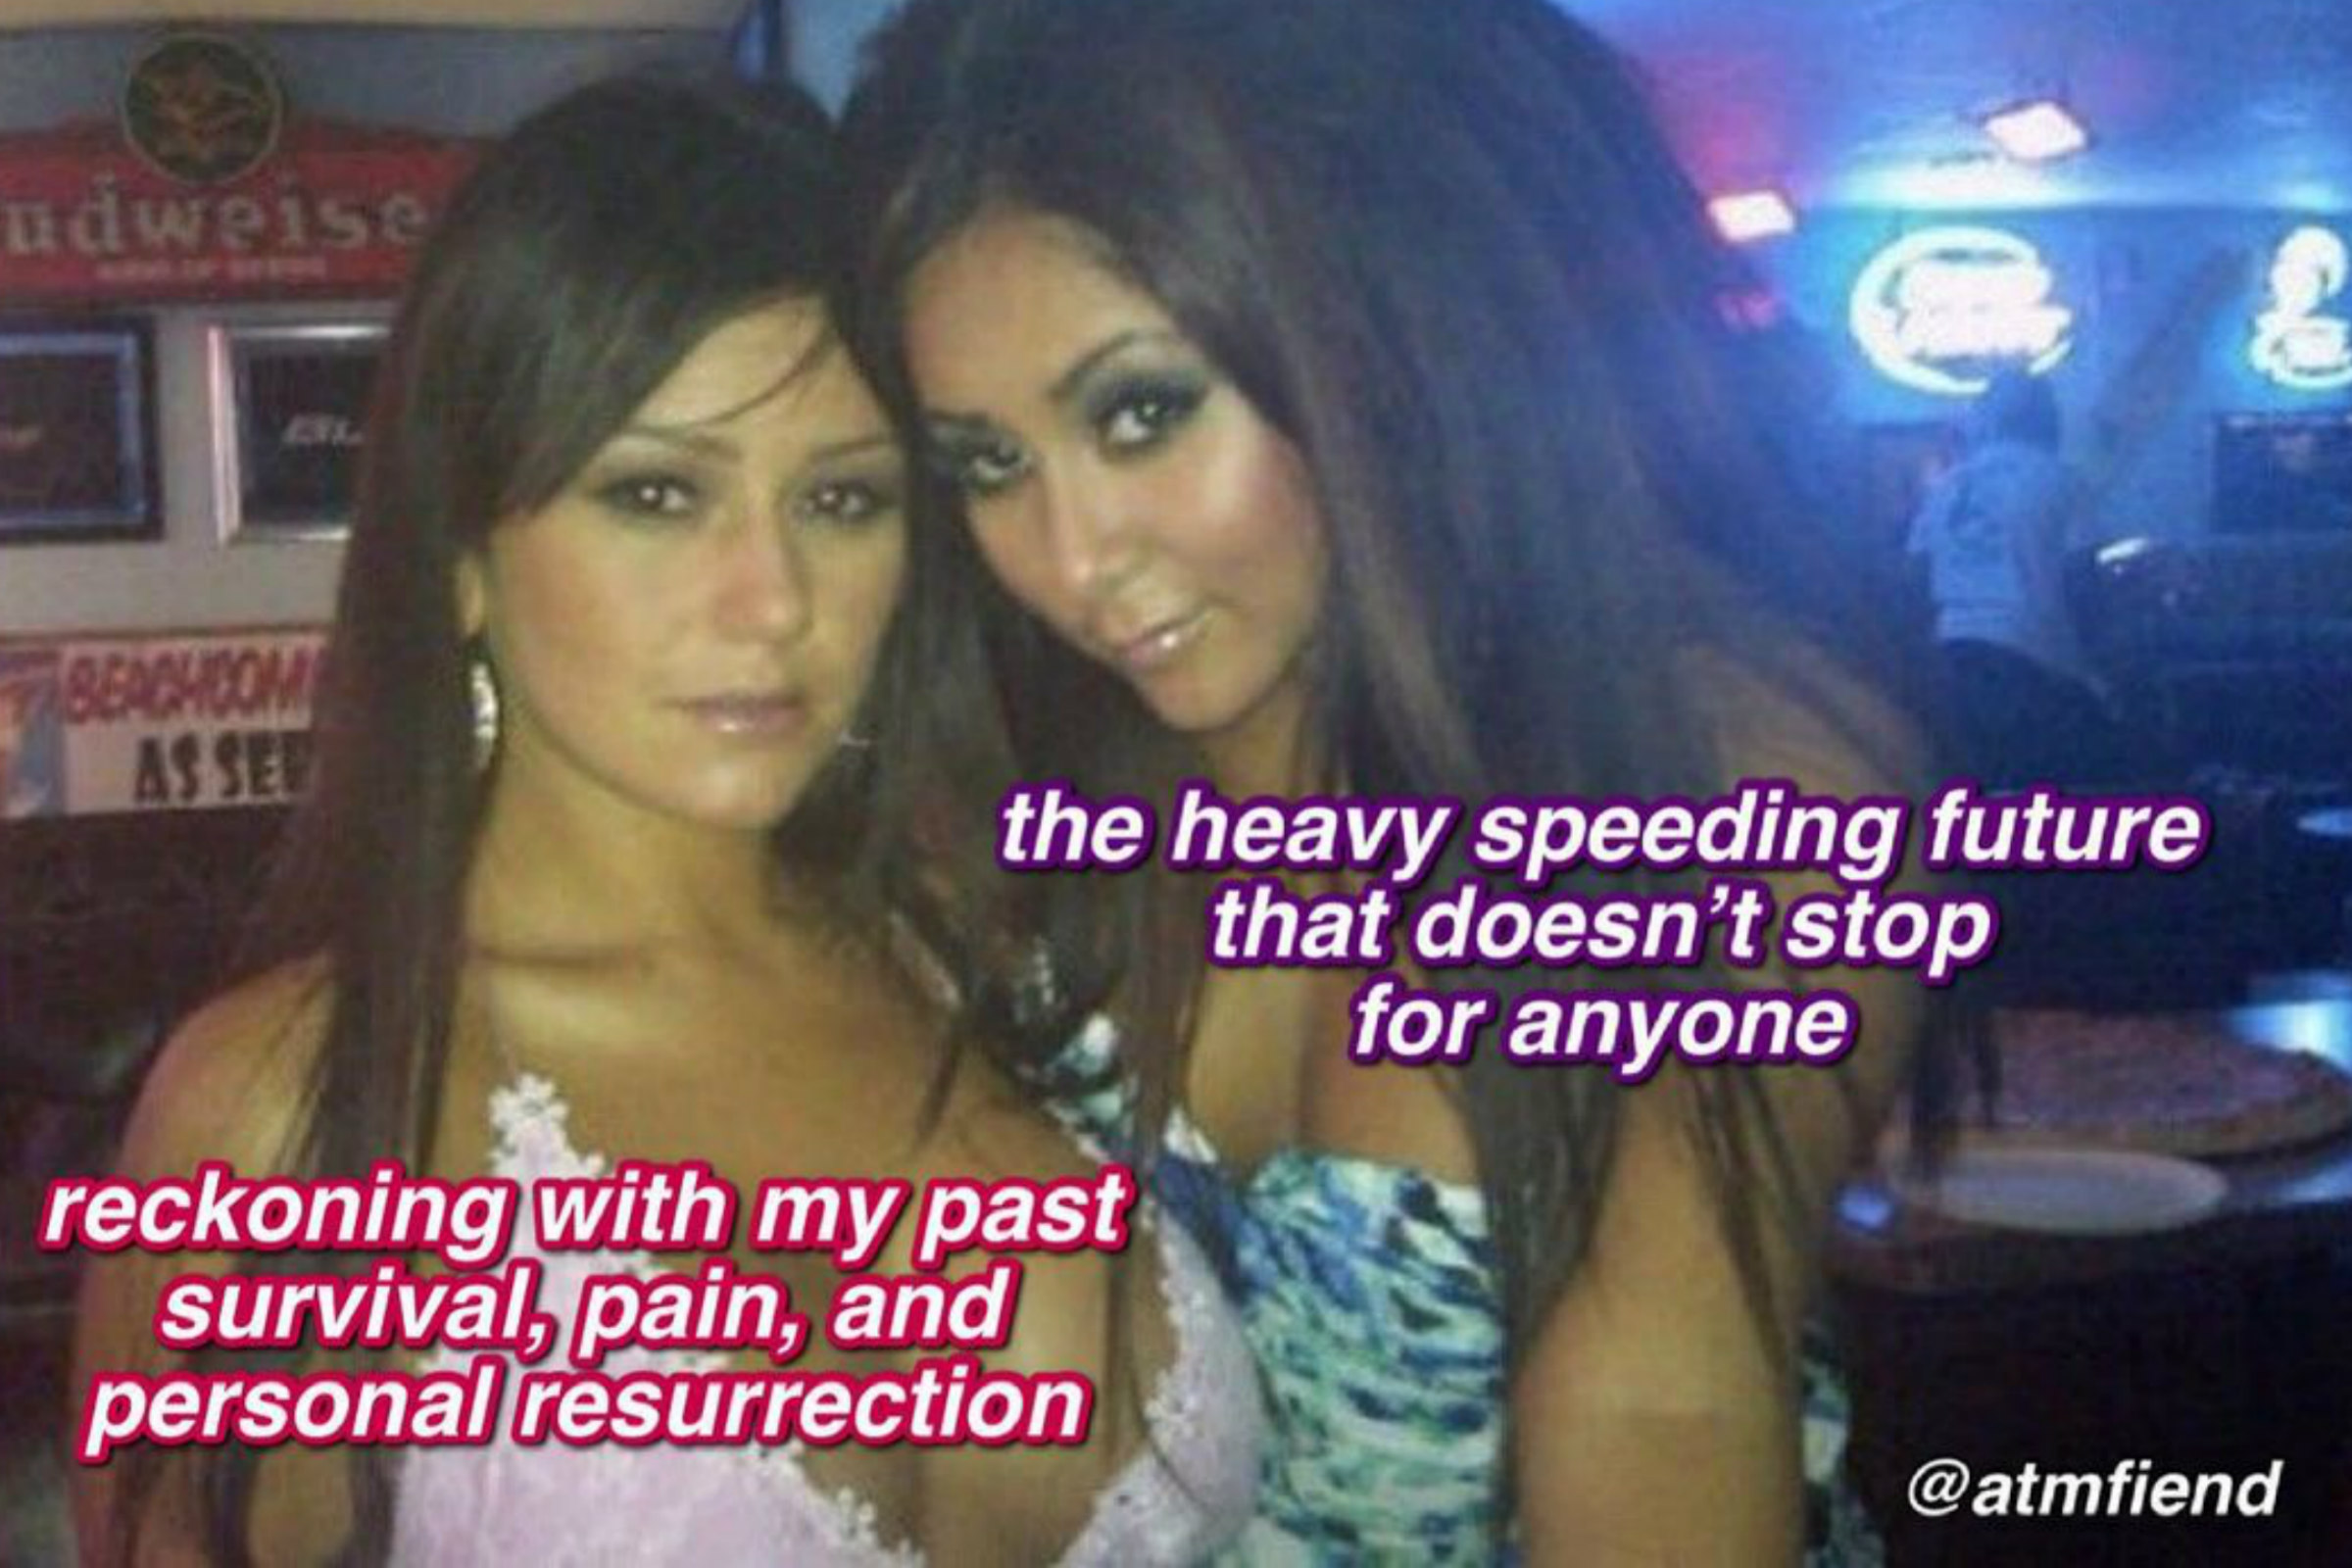 a meme of Jenni Farley and Nicole Polizzi, two white women, with pink and purple text over their face